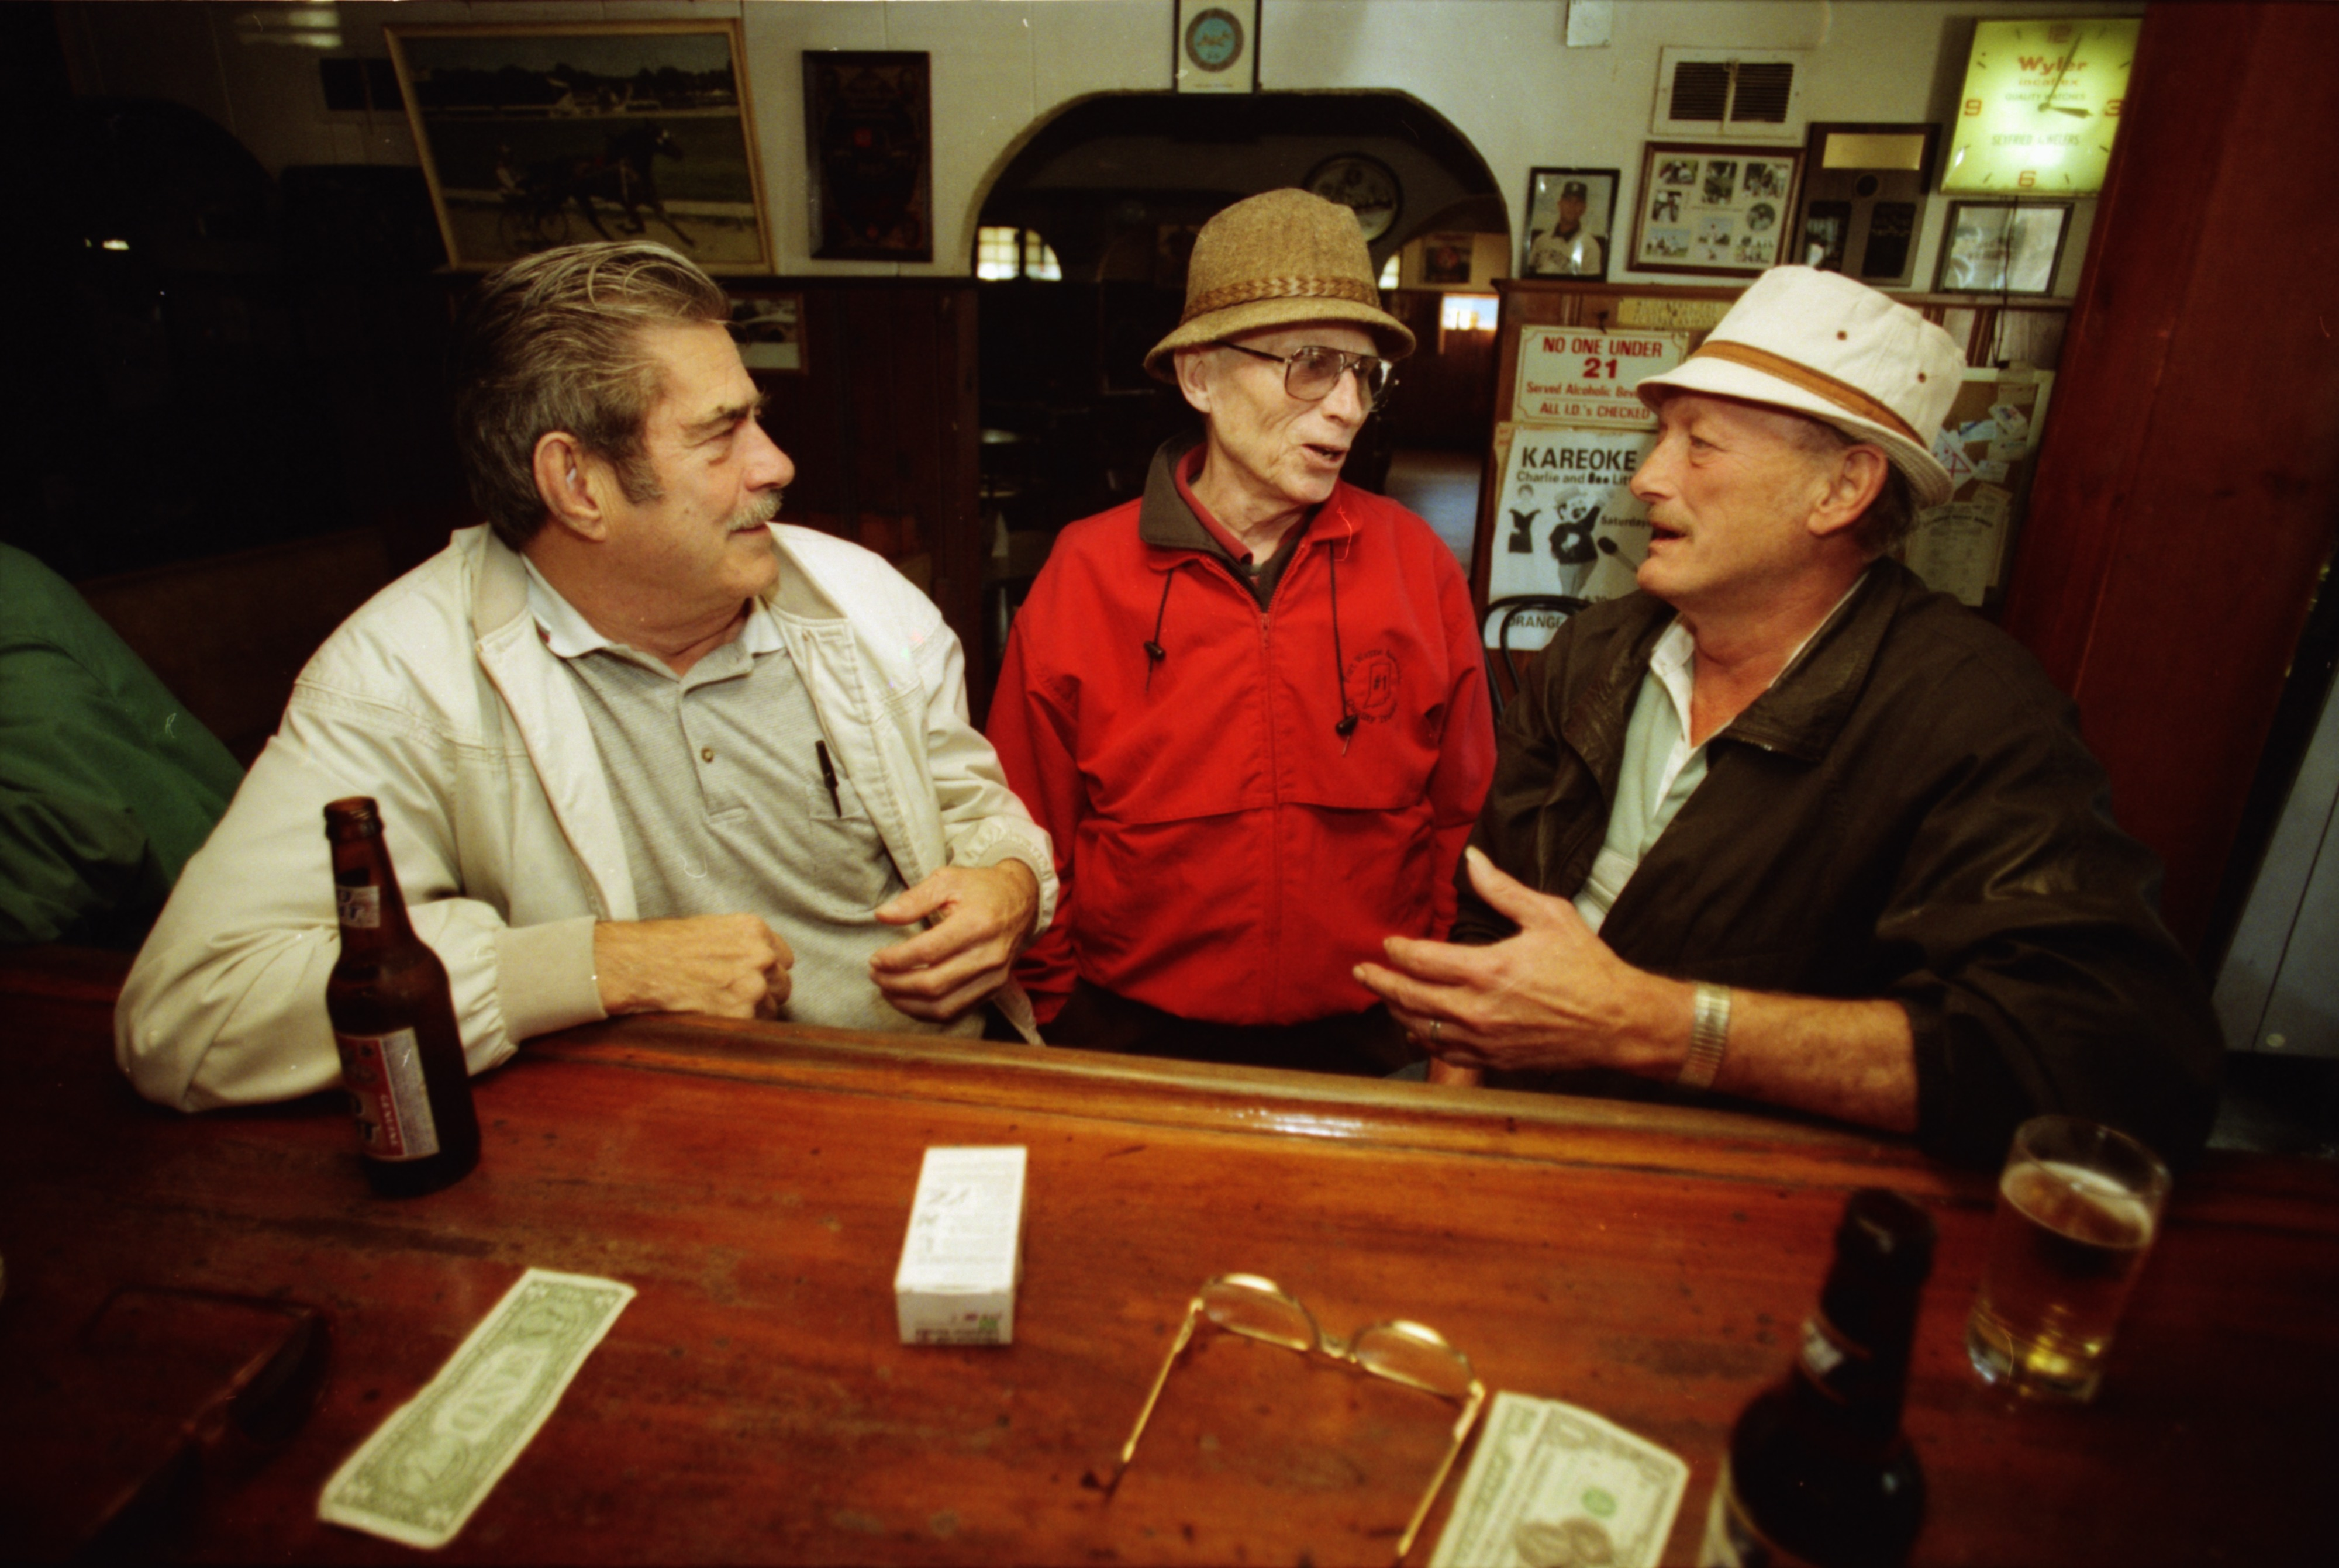 Bud Fahndrich and Two Regulars Chat at Ypsilanti's Orange Lantern Bar, October 1999 image